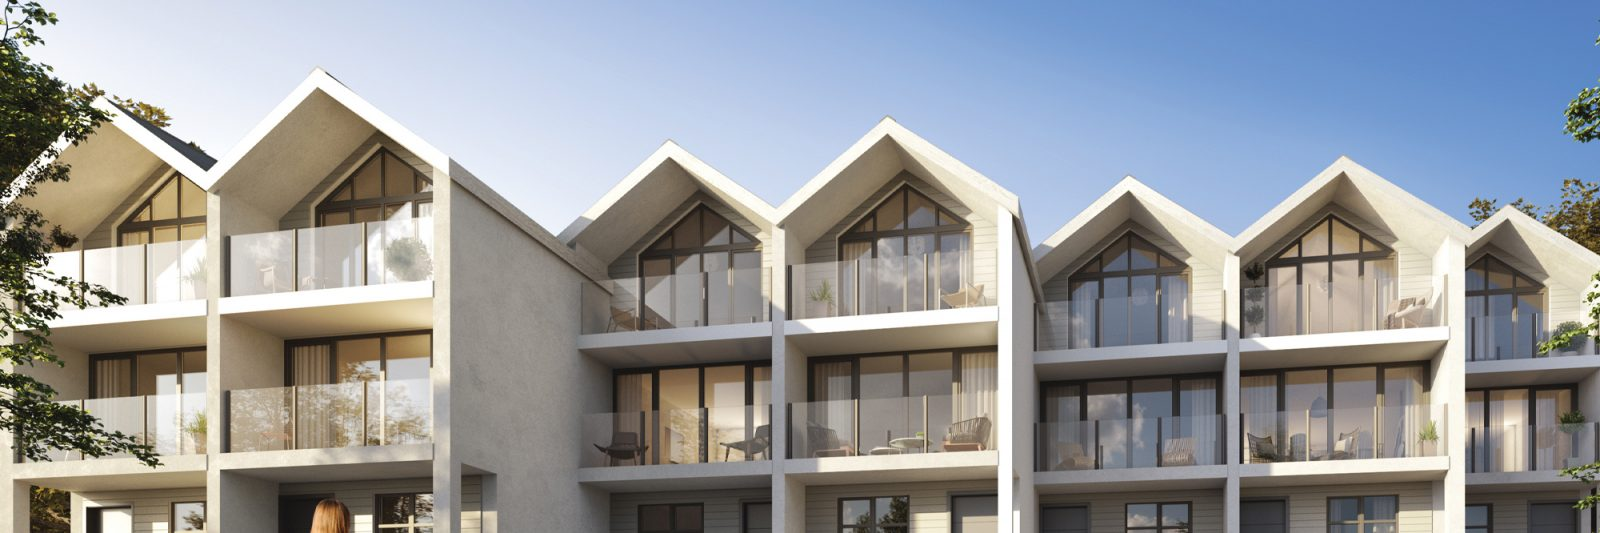 Stephens and stephens developers the strand porth newquay cornwall townhouse cgi 2000x1350